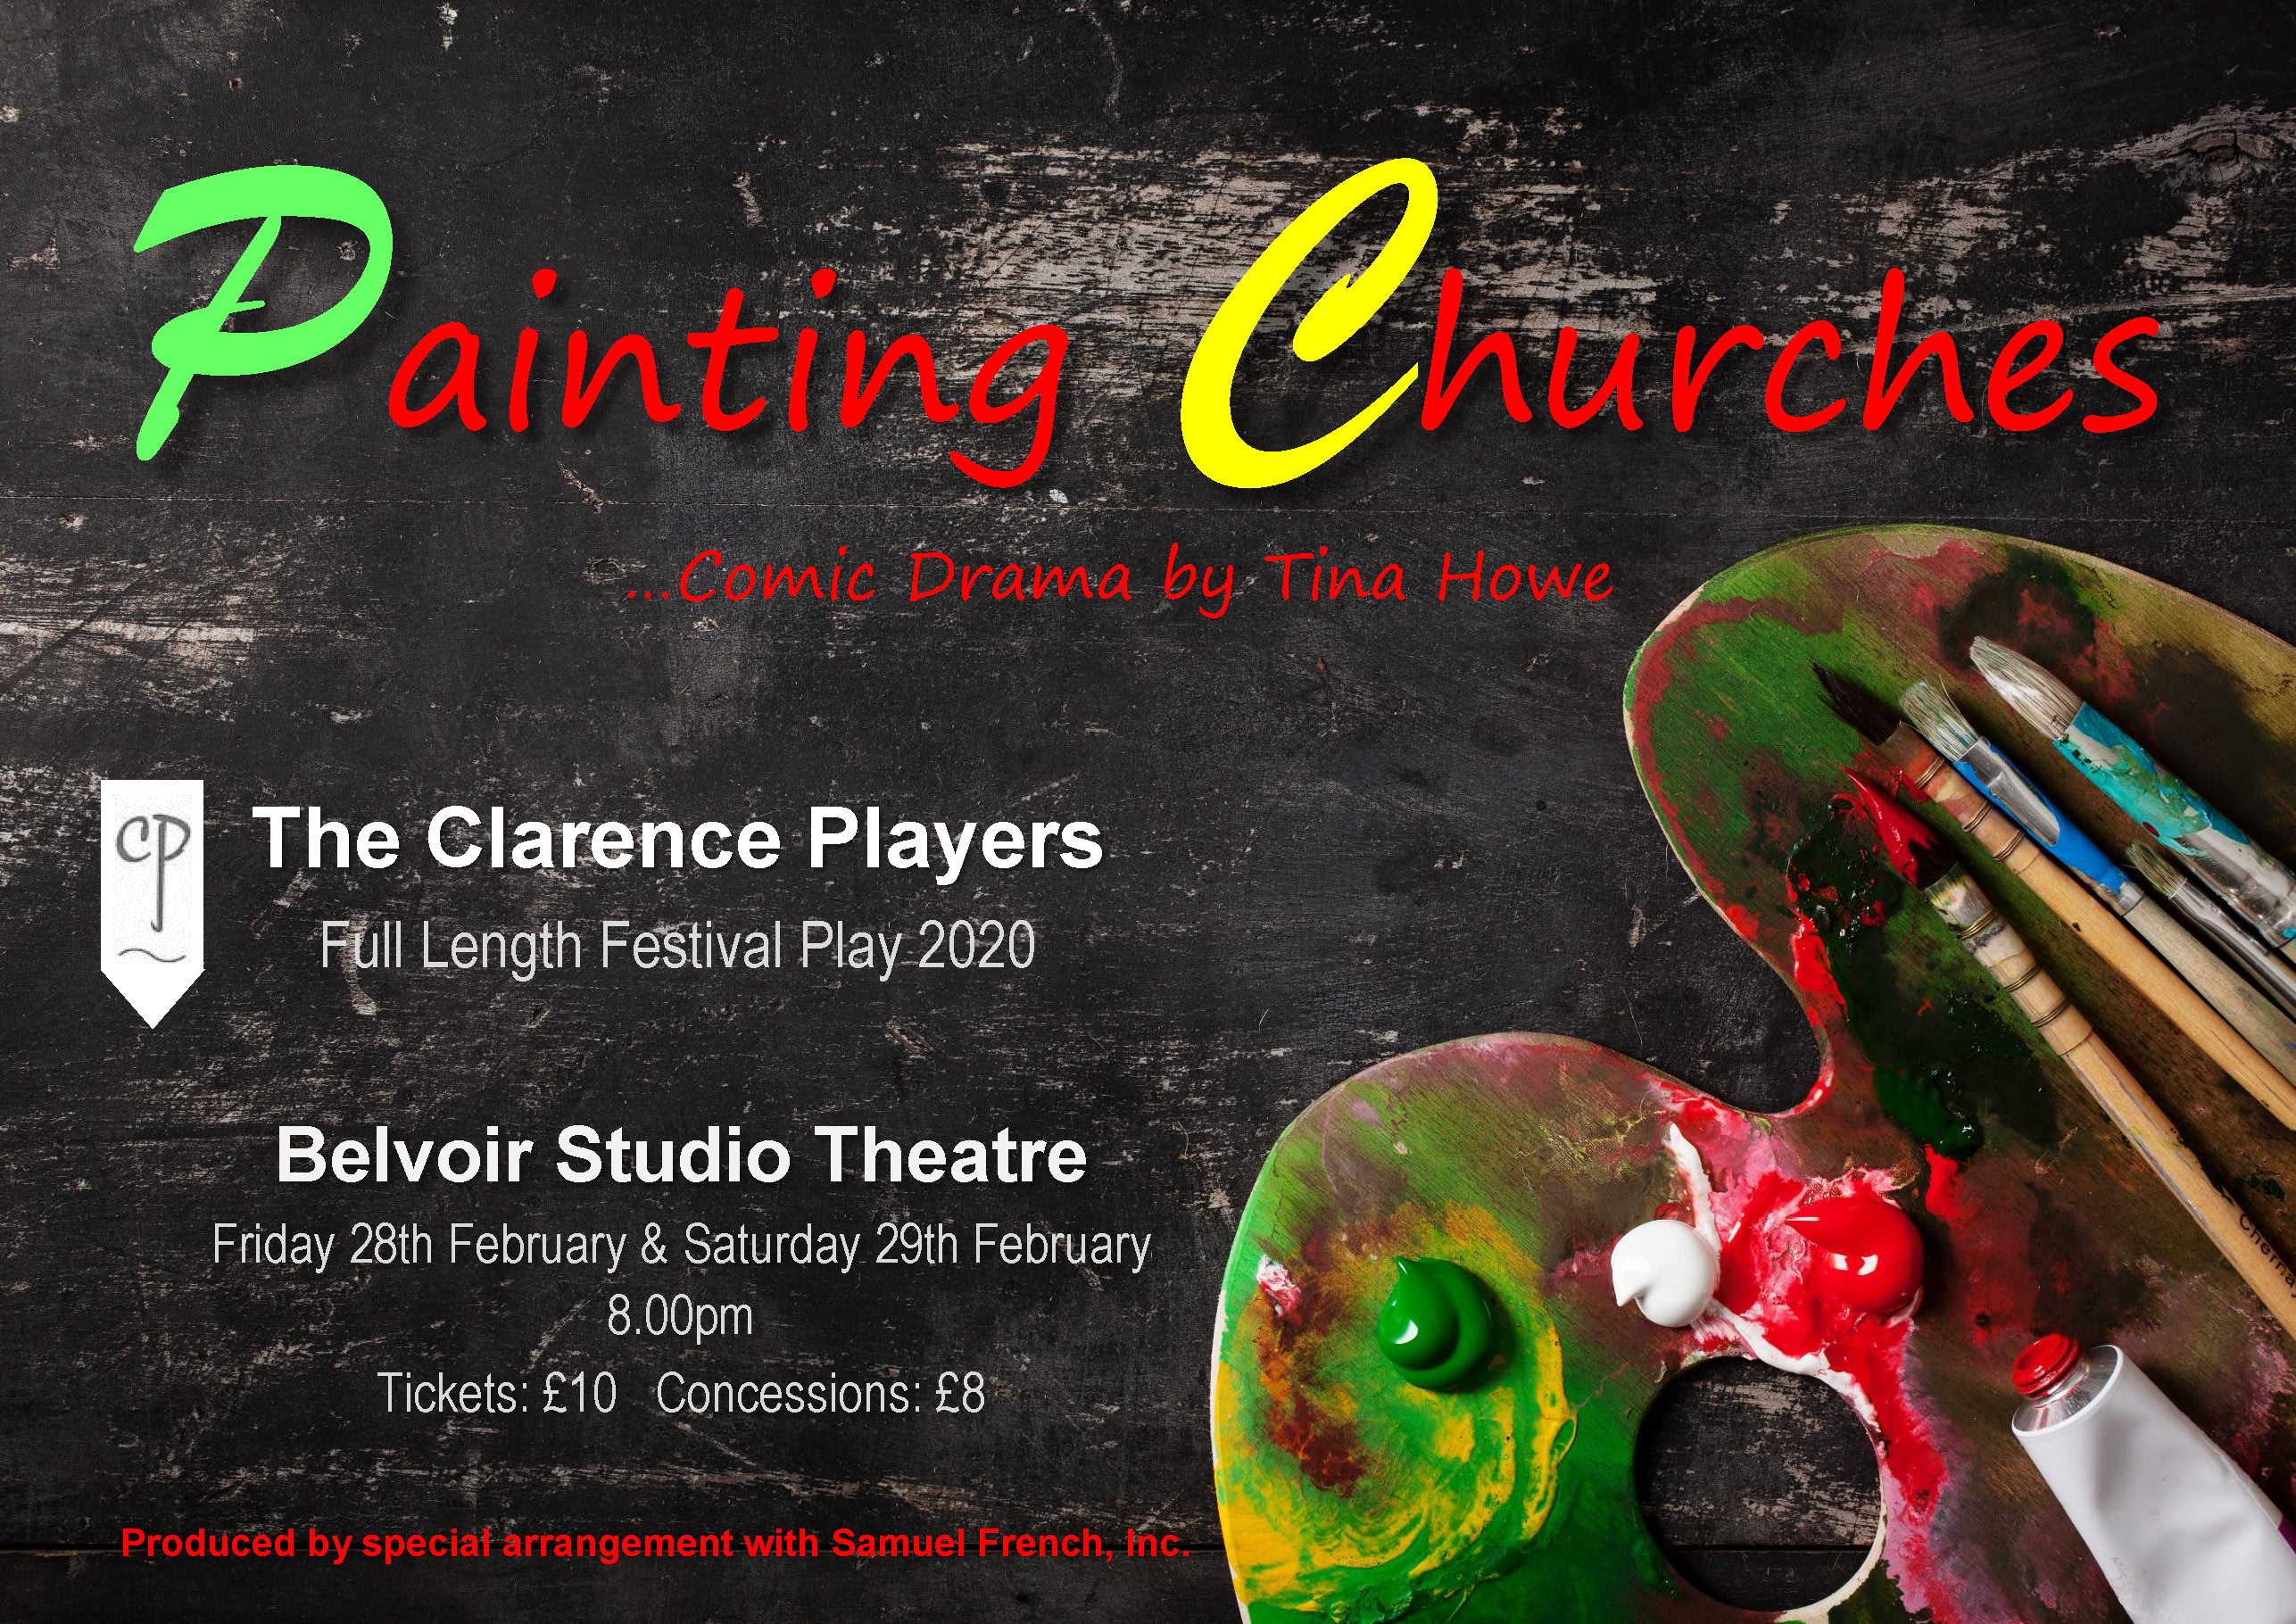 Clarence Players present Painting Churches by Tina Howe